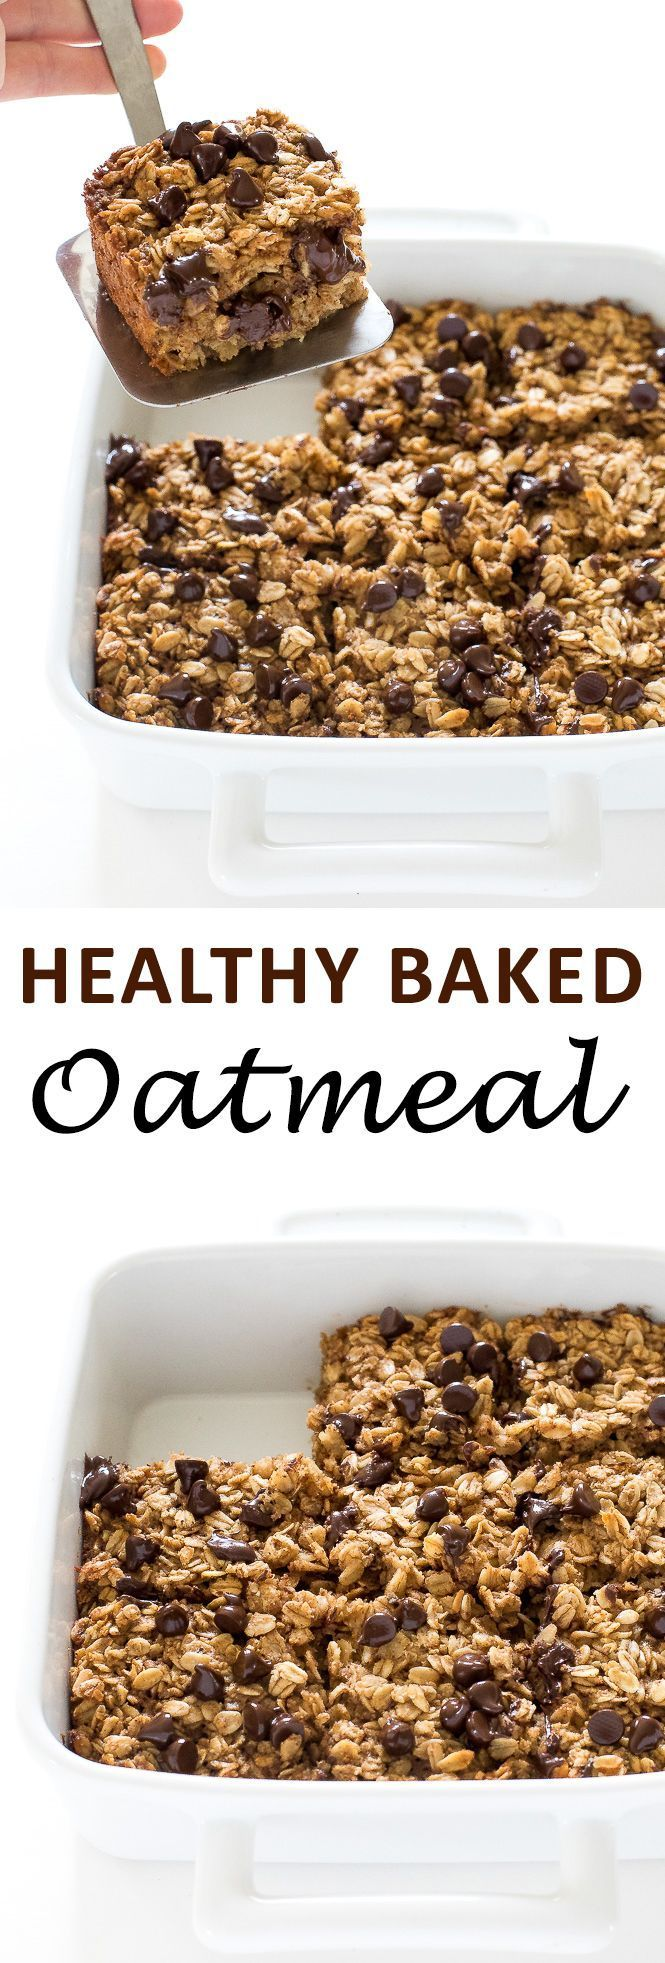 Healthy Baked Oatmeal Chef Savvy Recipe In 2020 Baked Oatmeal Healthy Baking Recipes Healthy Clean Eating Baking